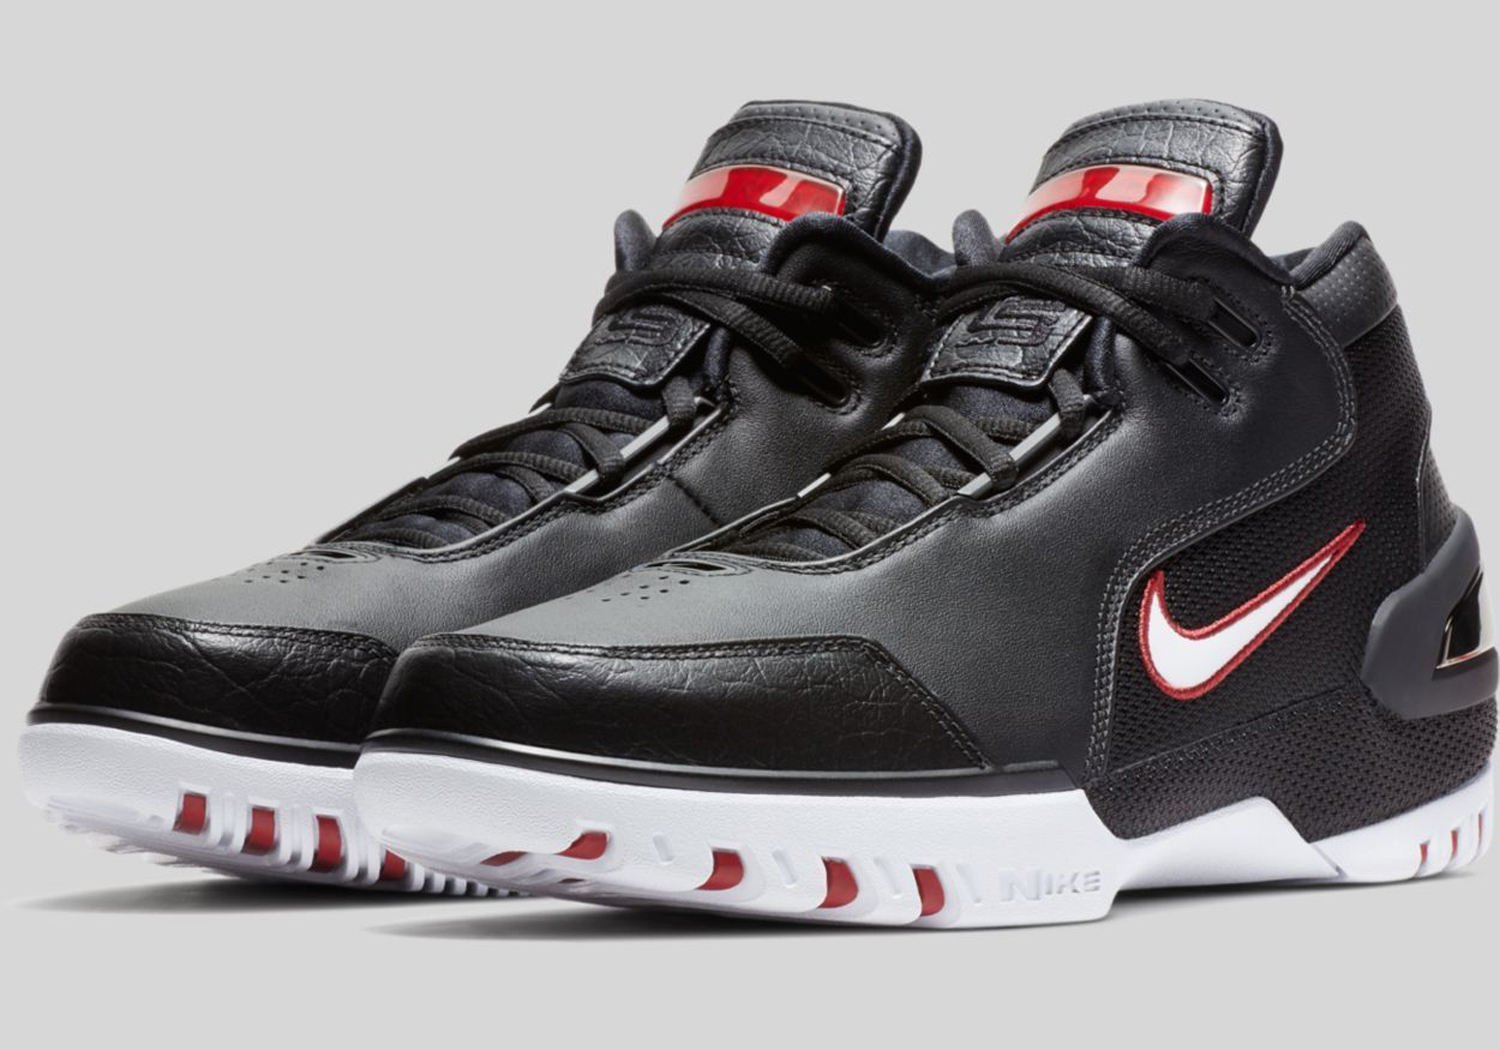 official photos e8916 4e040 air zoom generation Archives - WearTesters